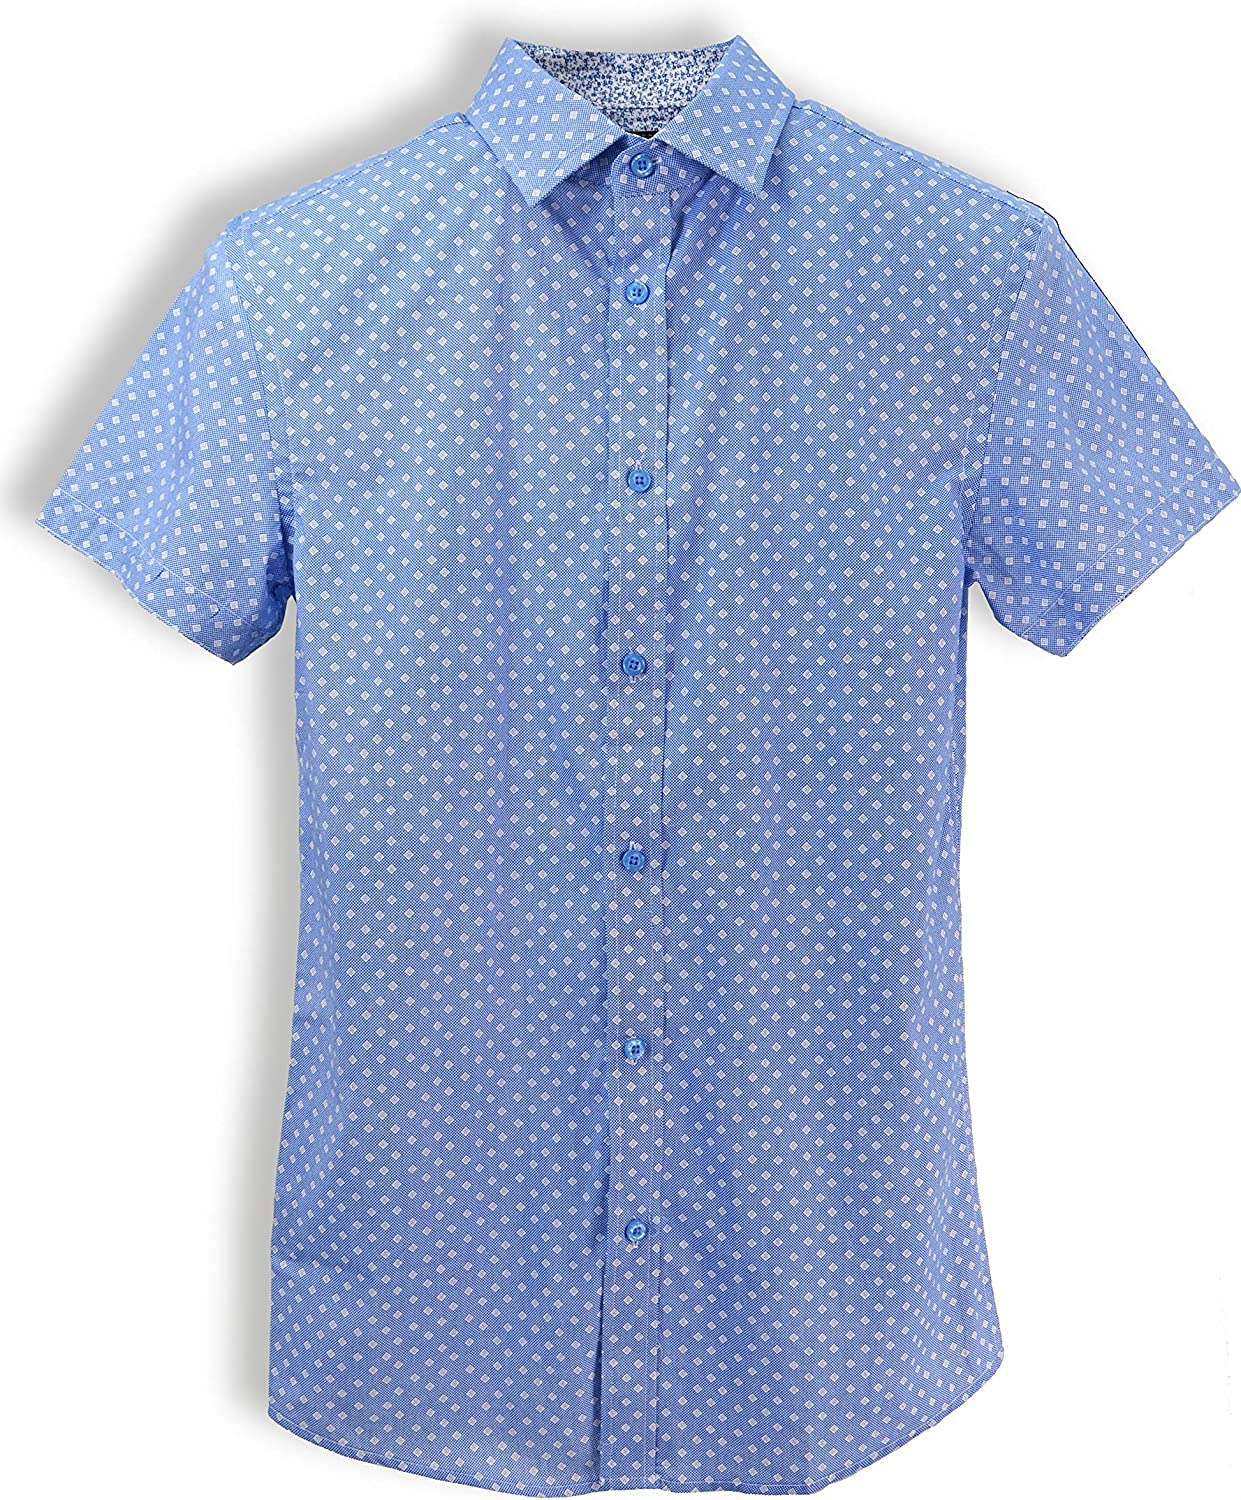 English Laundry Short-Sleeve Dots Shirt